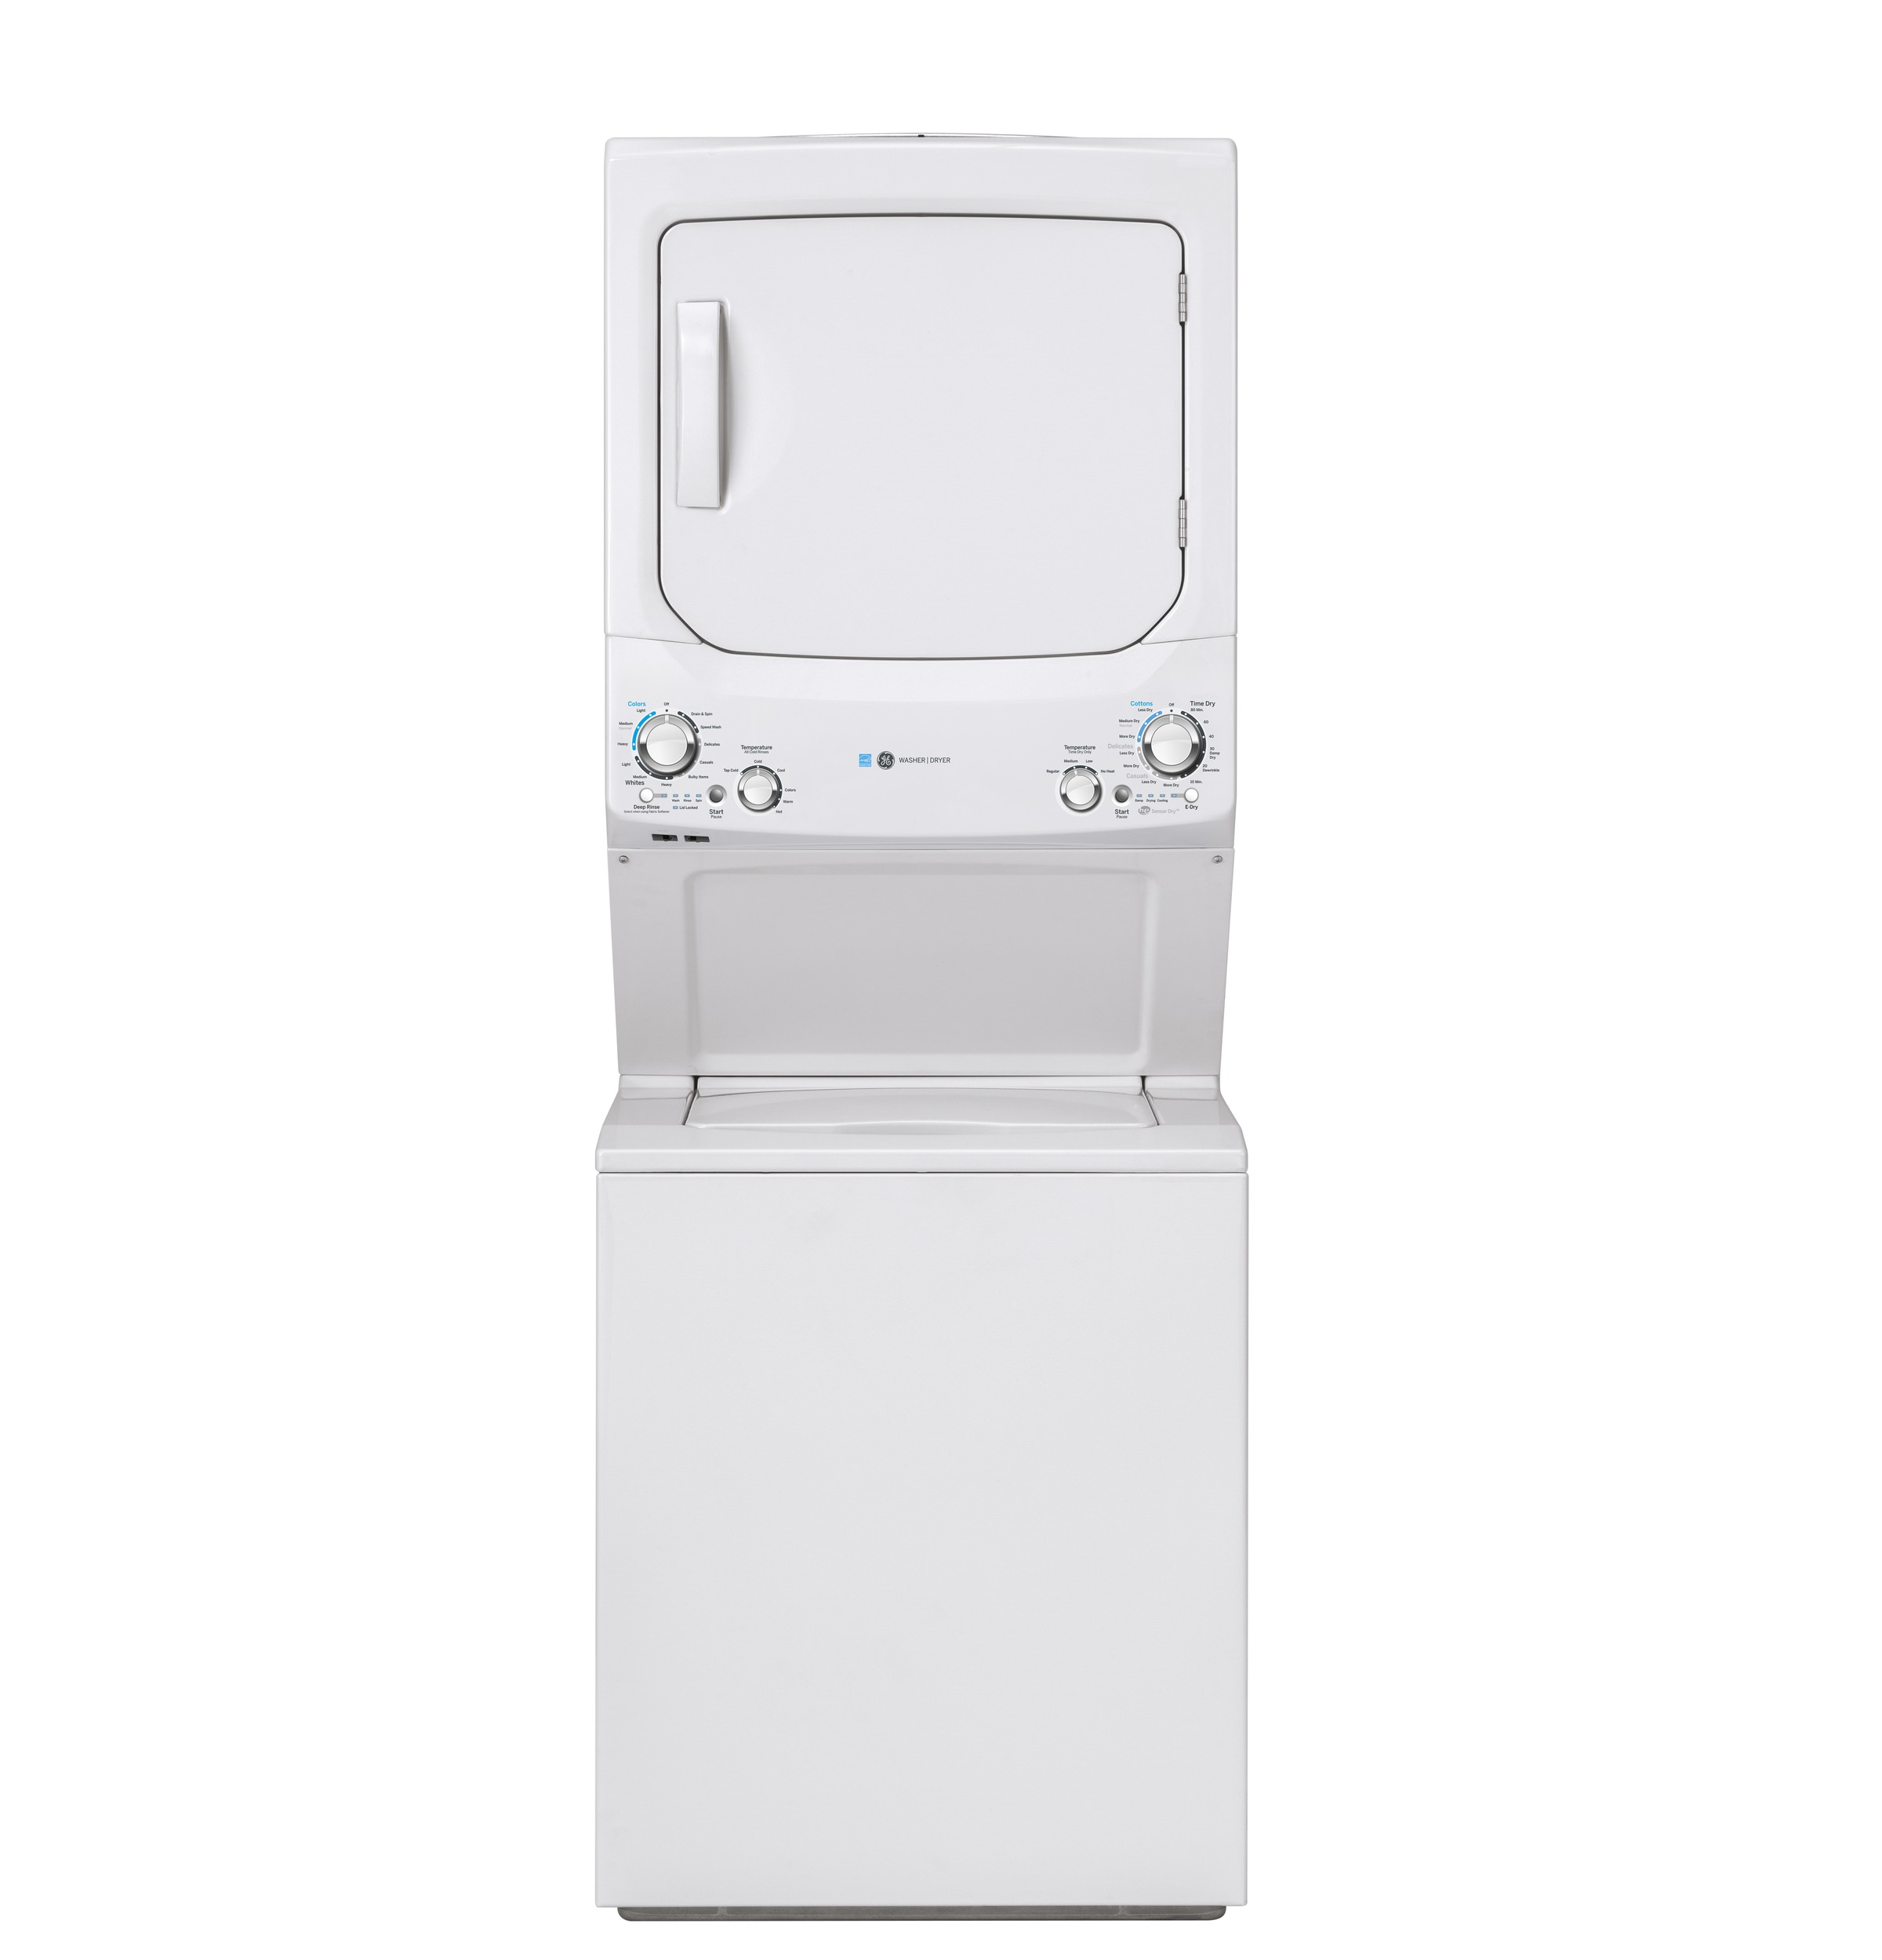 GE GE Unitized Spacemaker® ENERGY STAR® 3.9 cu. ft. Capacity Washer with Stainless Steel Basket and 5.9 cu. ft. Capacity Electric Dryer